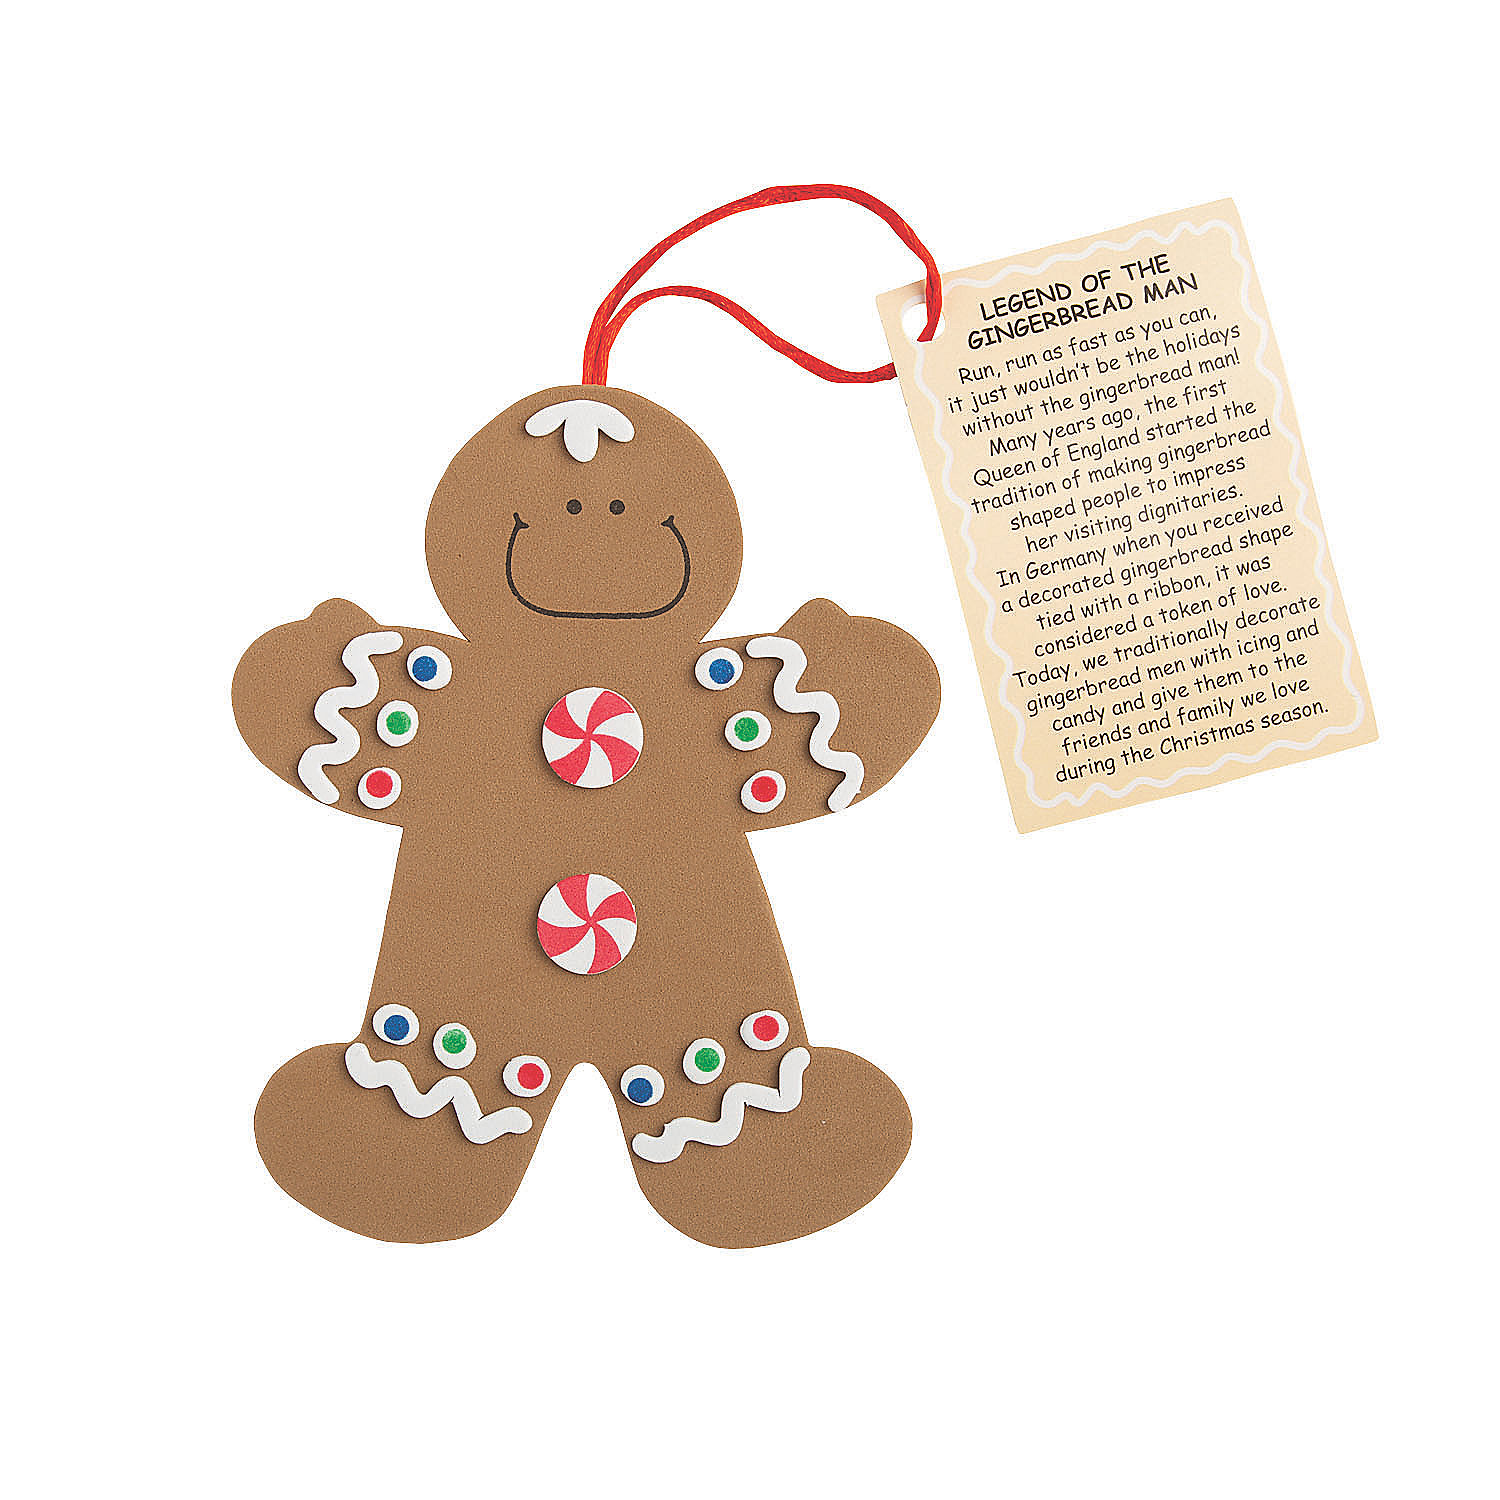 Legend of the gingerbread man christmas